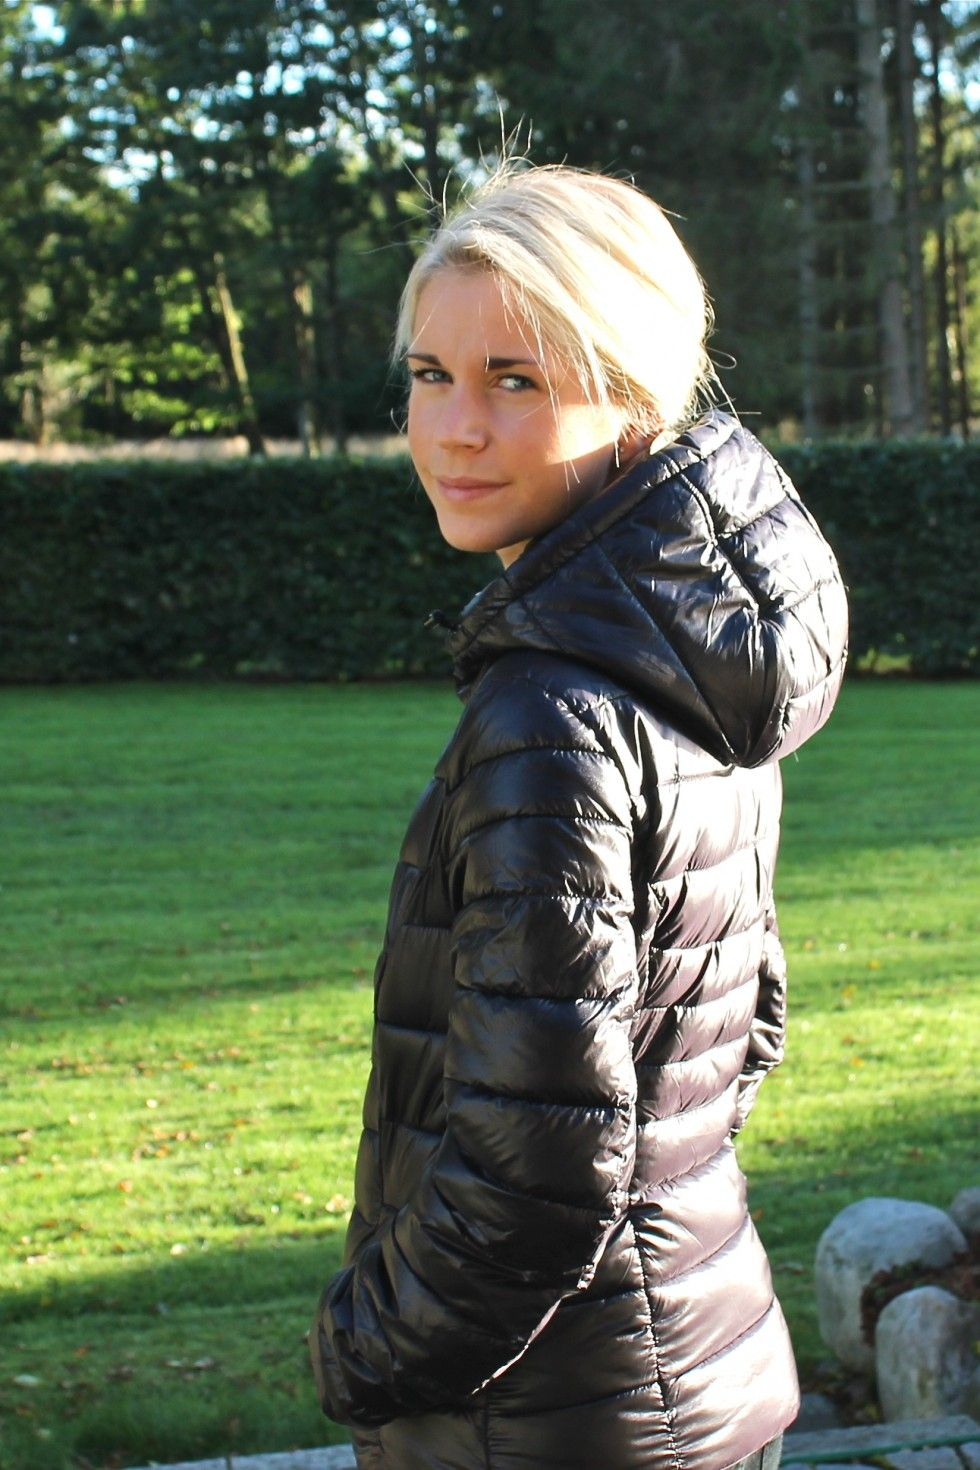 d0677e10780a Blonde woman in sexy down jacket